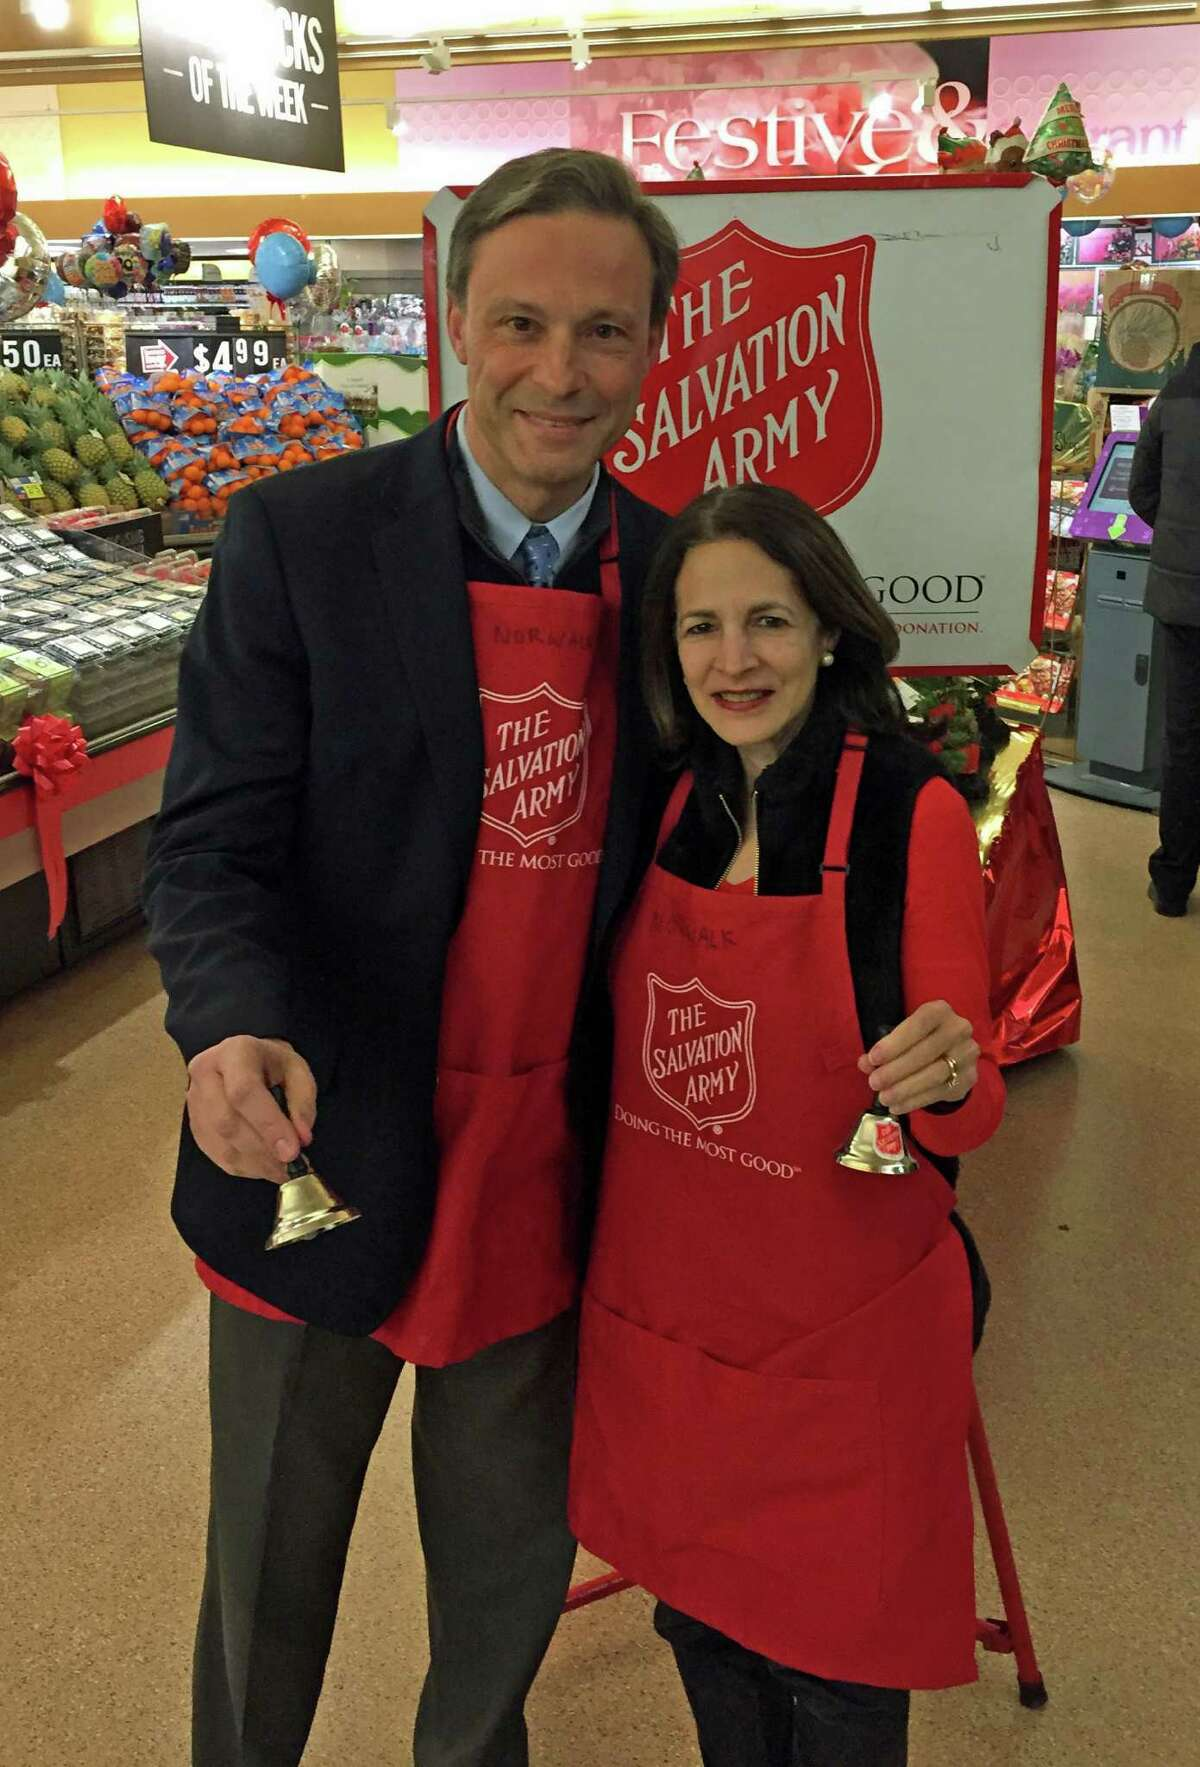 State Reps. Gail Lavielle, R-Wilton, and Fred Wilms, R-Norwalk, participated in the Salvation Armys annual Red Kettle Campaign by ringing bells to collect donations at the Stop and Shop on Main Avenue in Norwalk.